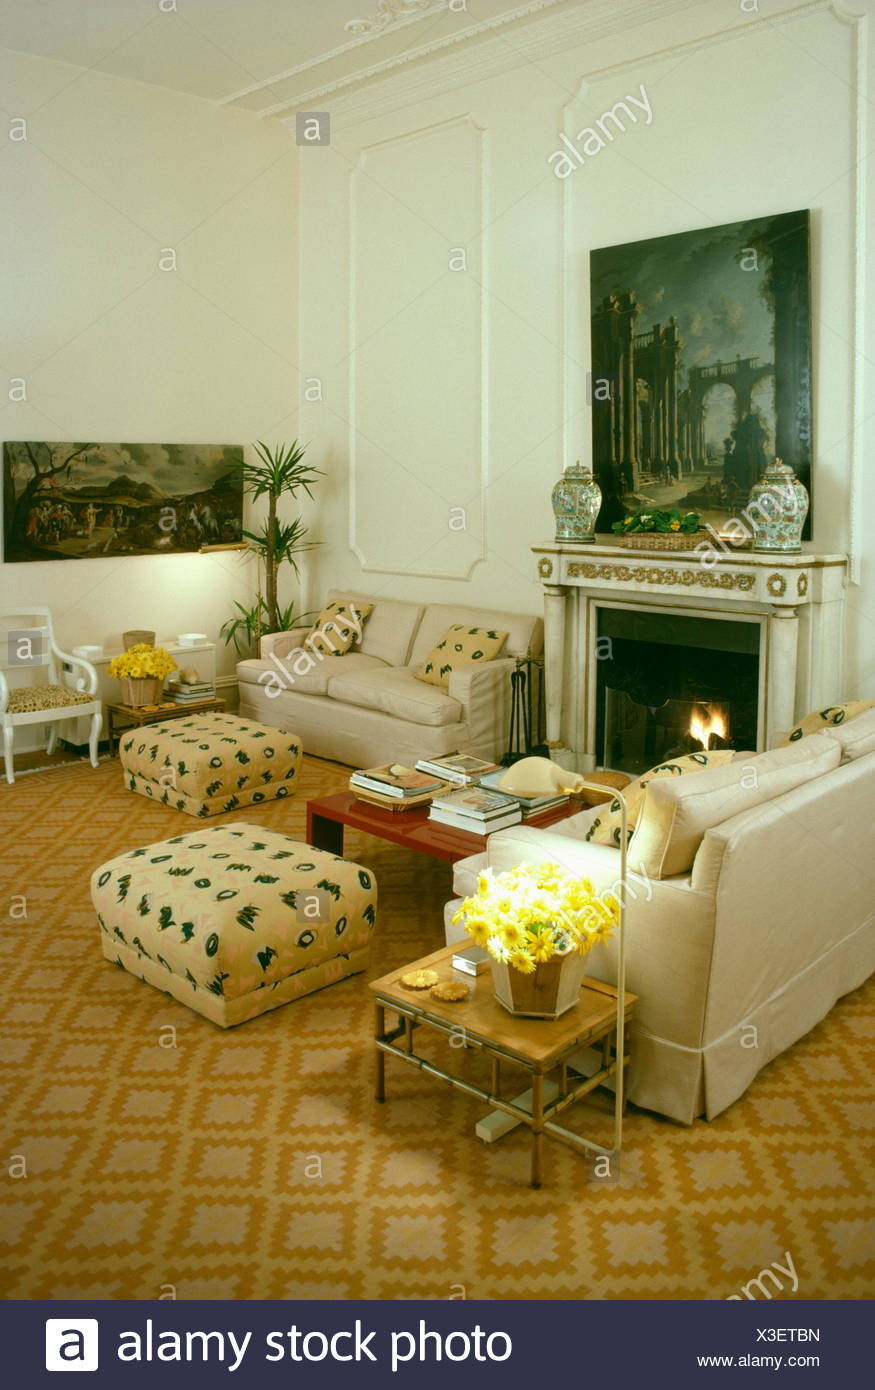 Merveilleux Sofas And Upholstered Patterned Stools In Livingroom With Fireplace And  Patterned Yellow Carpet